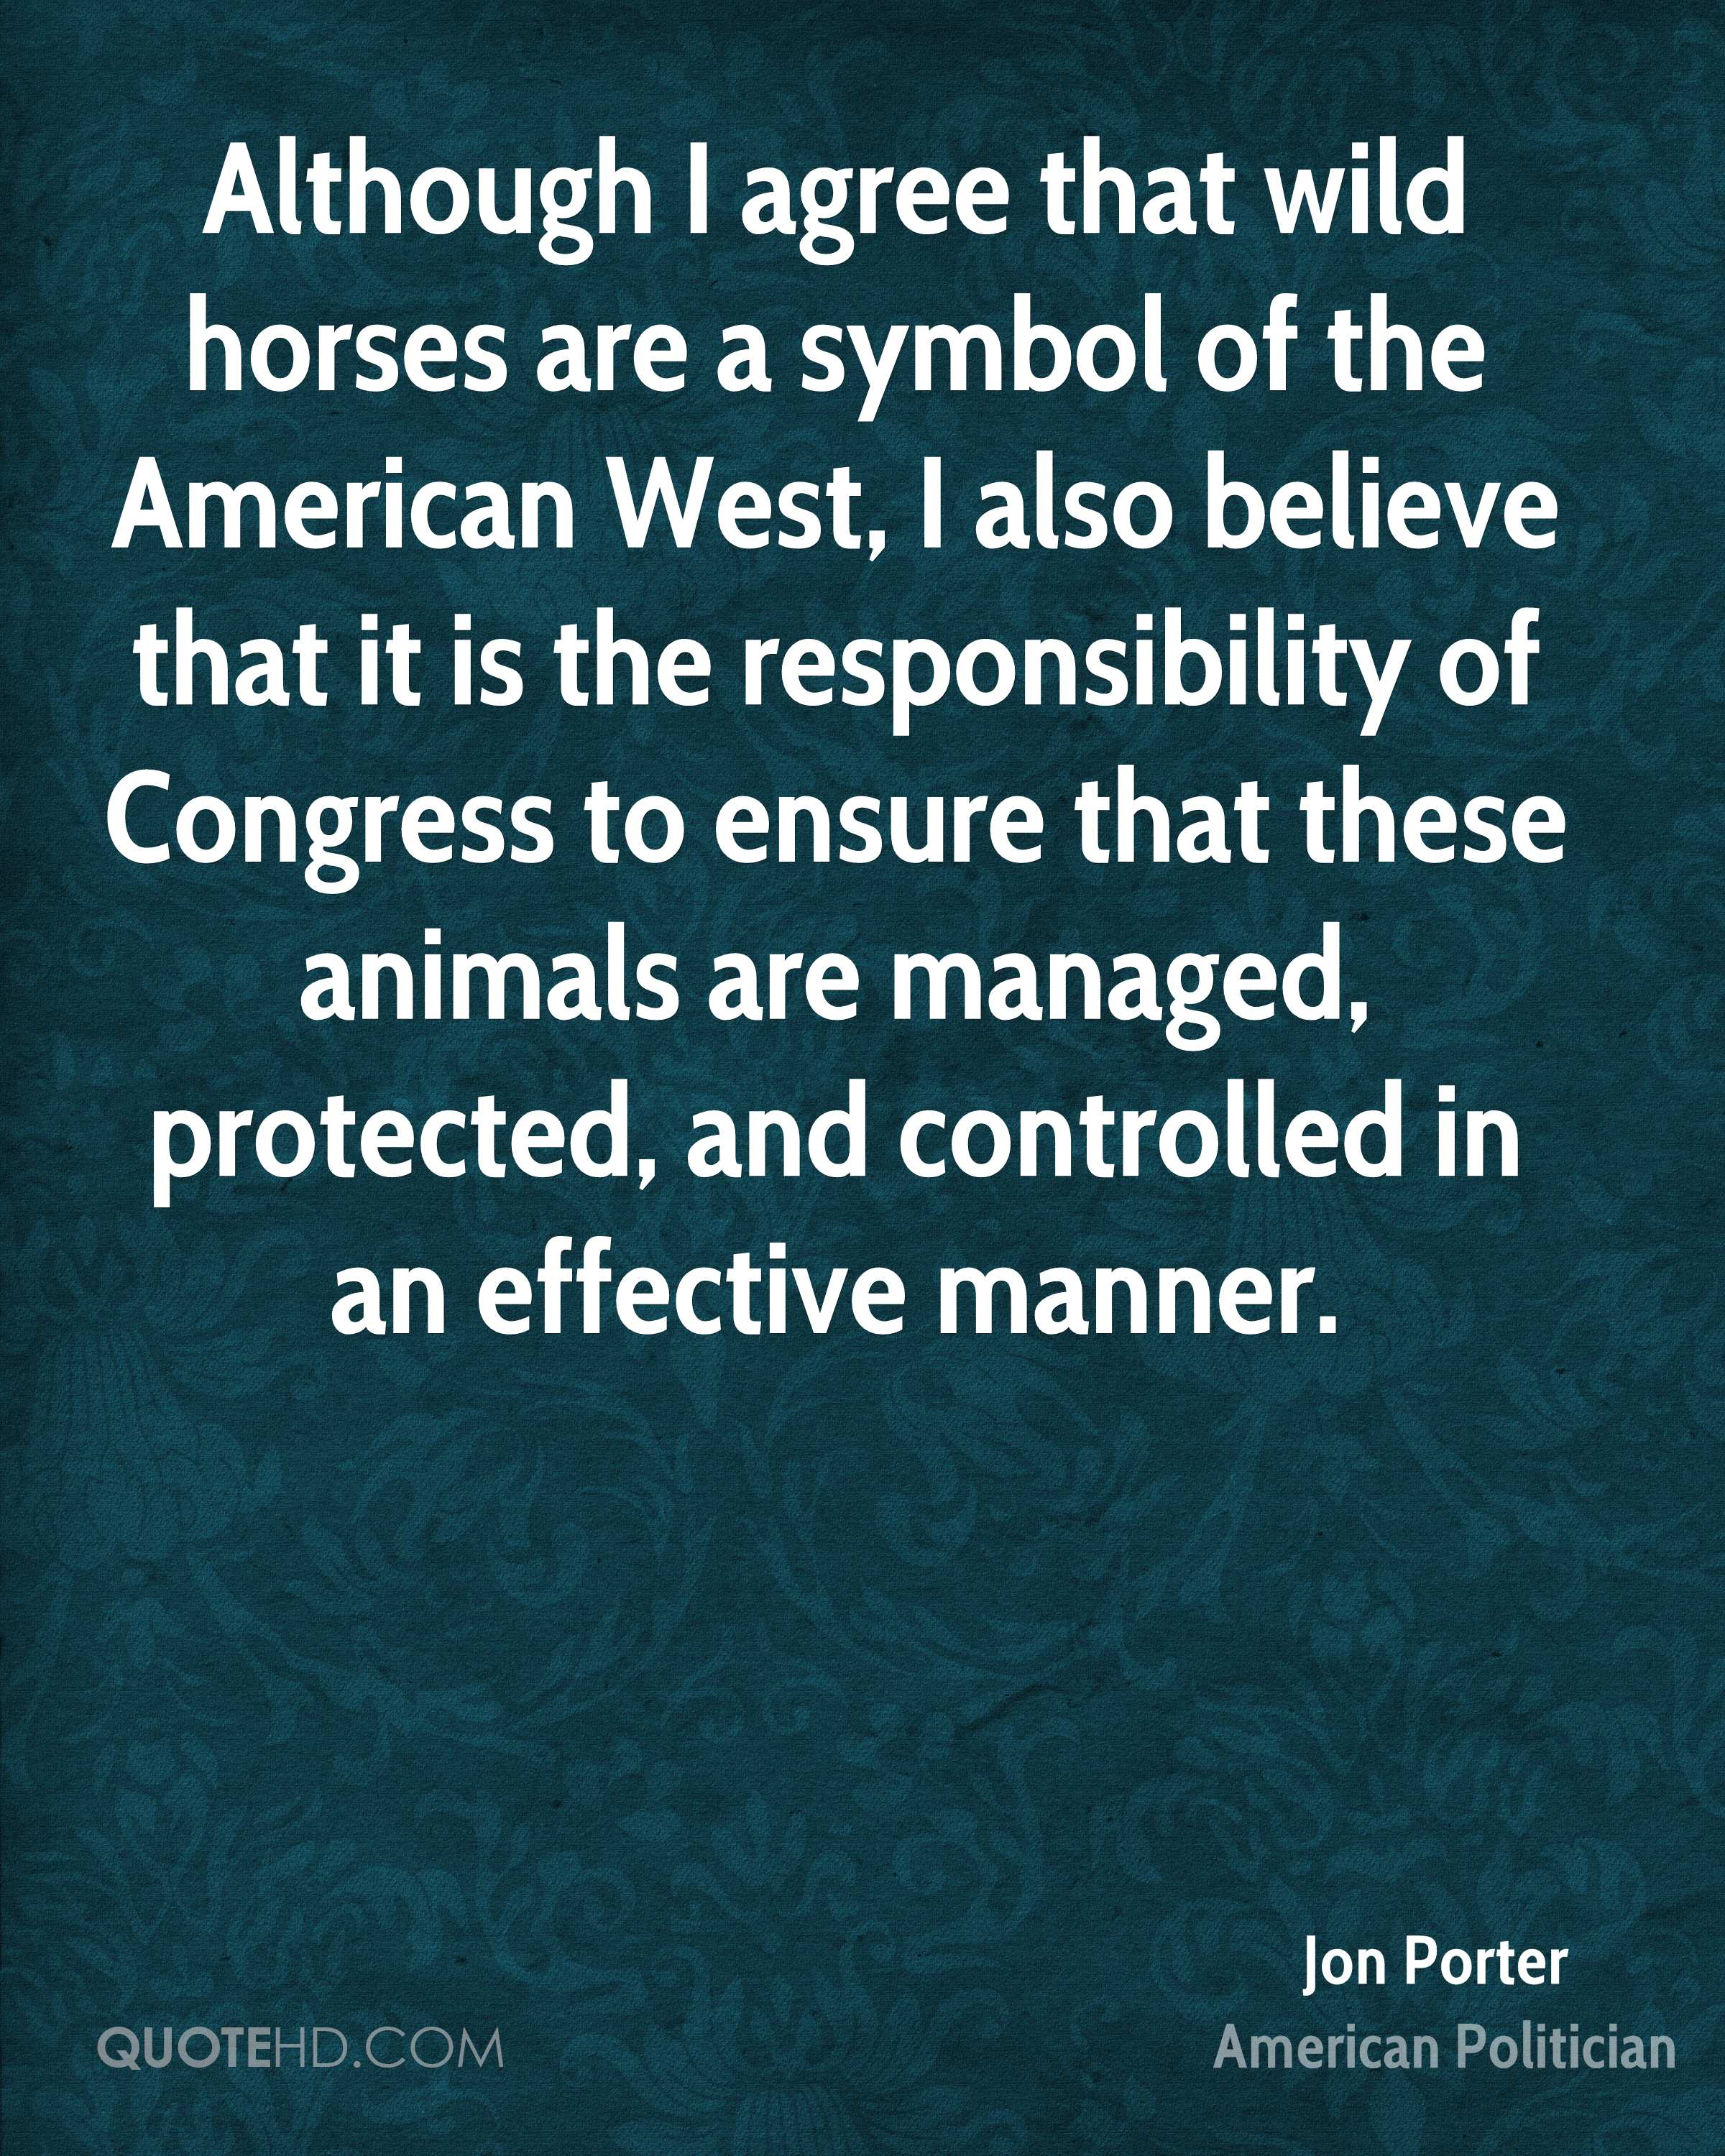 Although I agree that wild horses are a symbol of the American West, I also believe that it is the responsibility of Congress to ensure that these animals are managed, protected, and controlled in an effective manner.